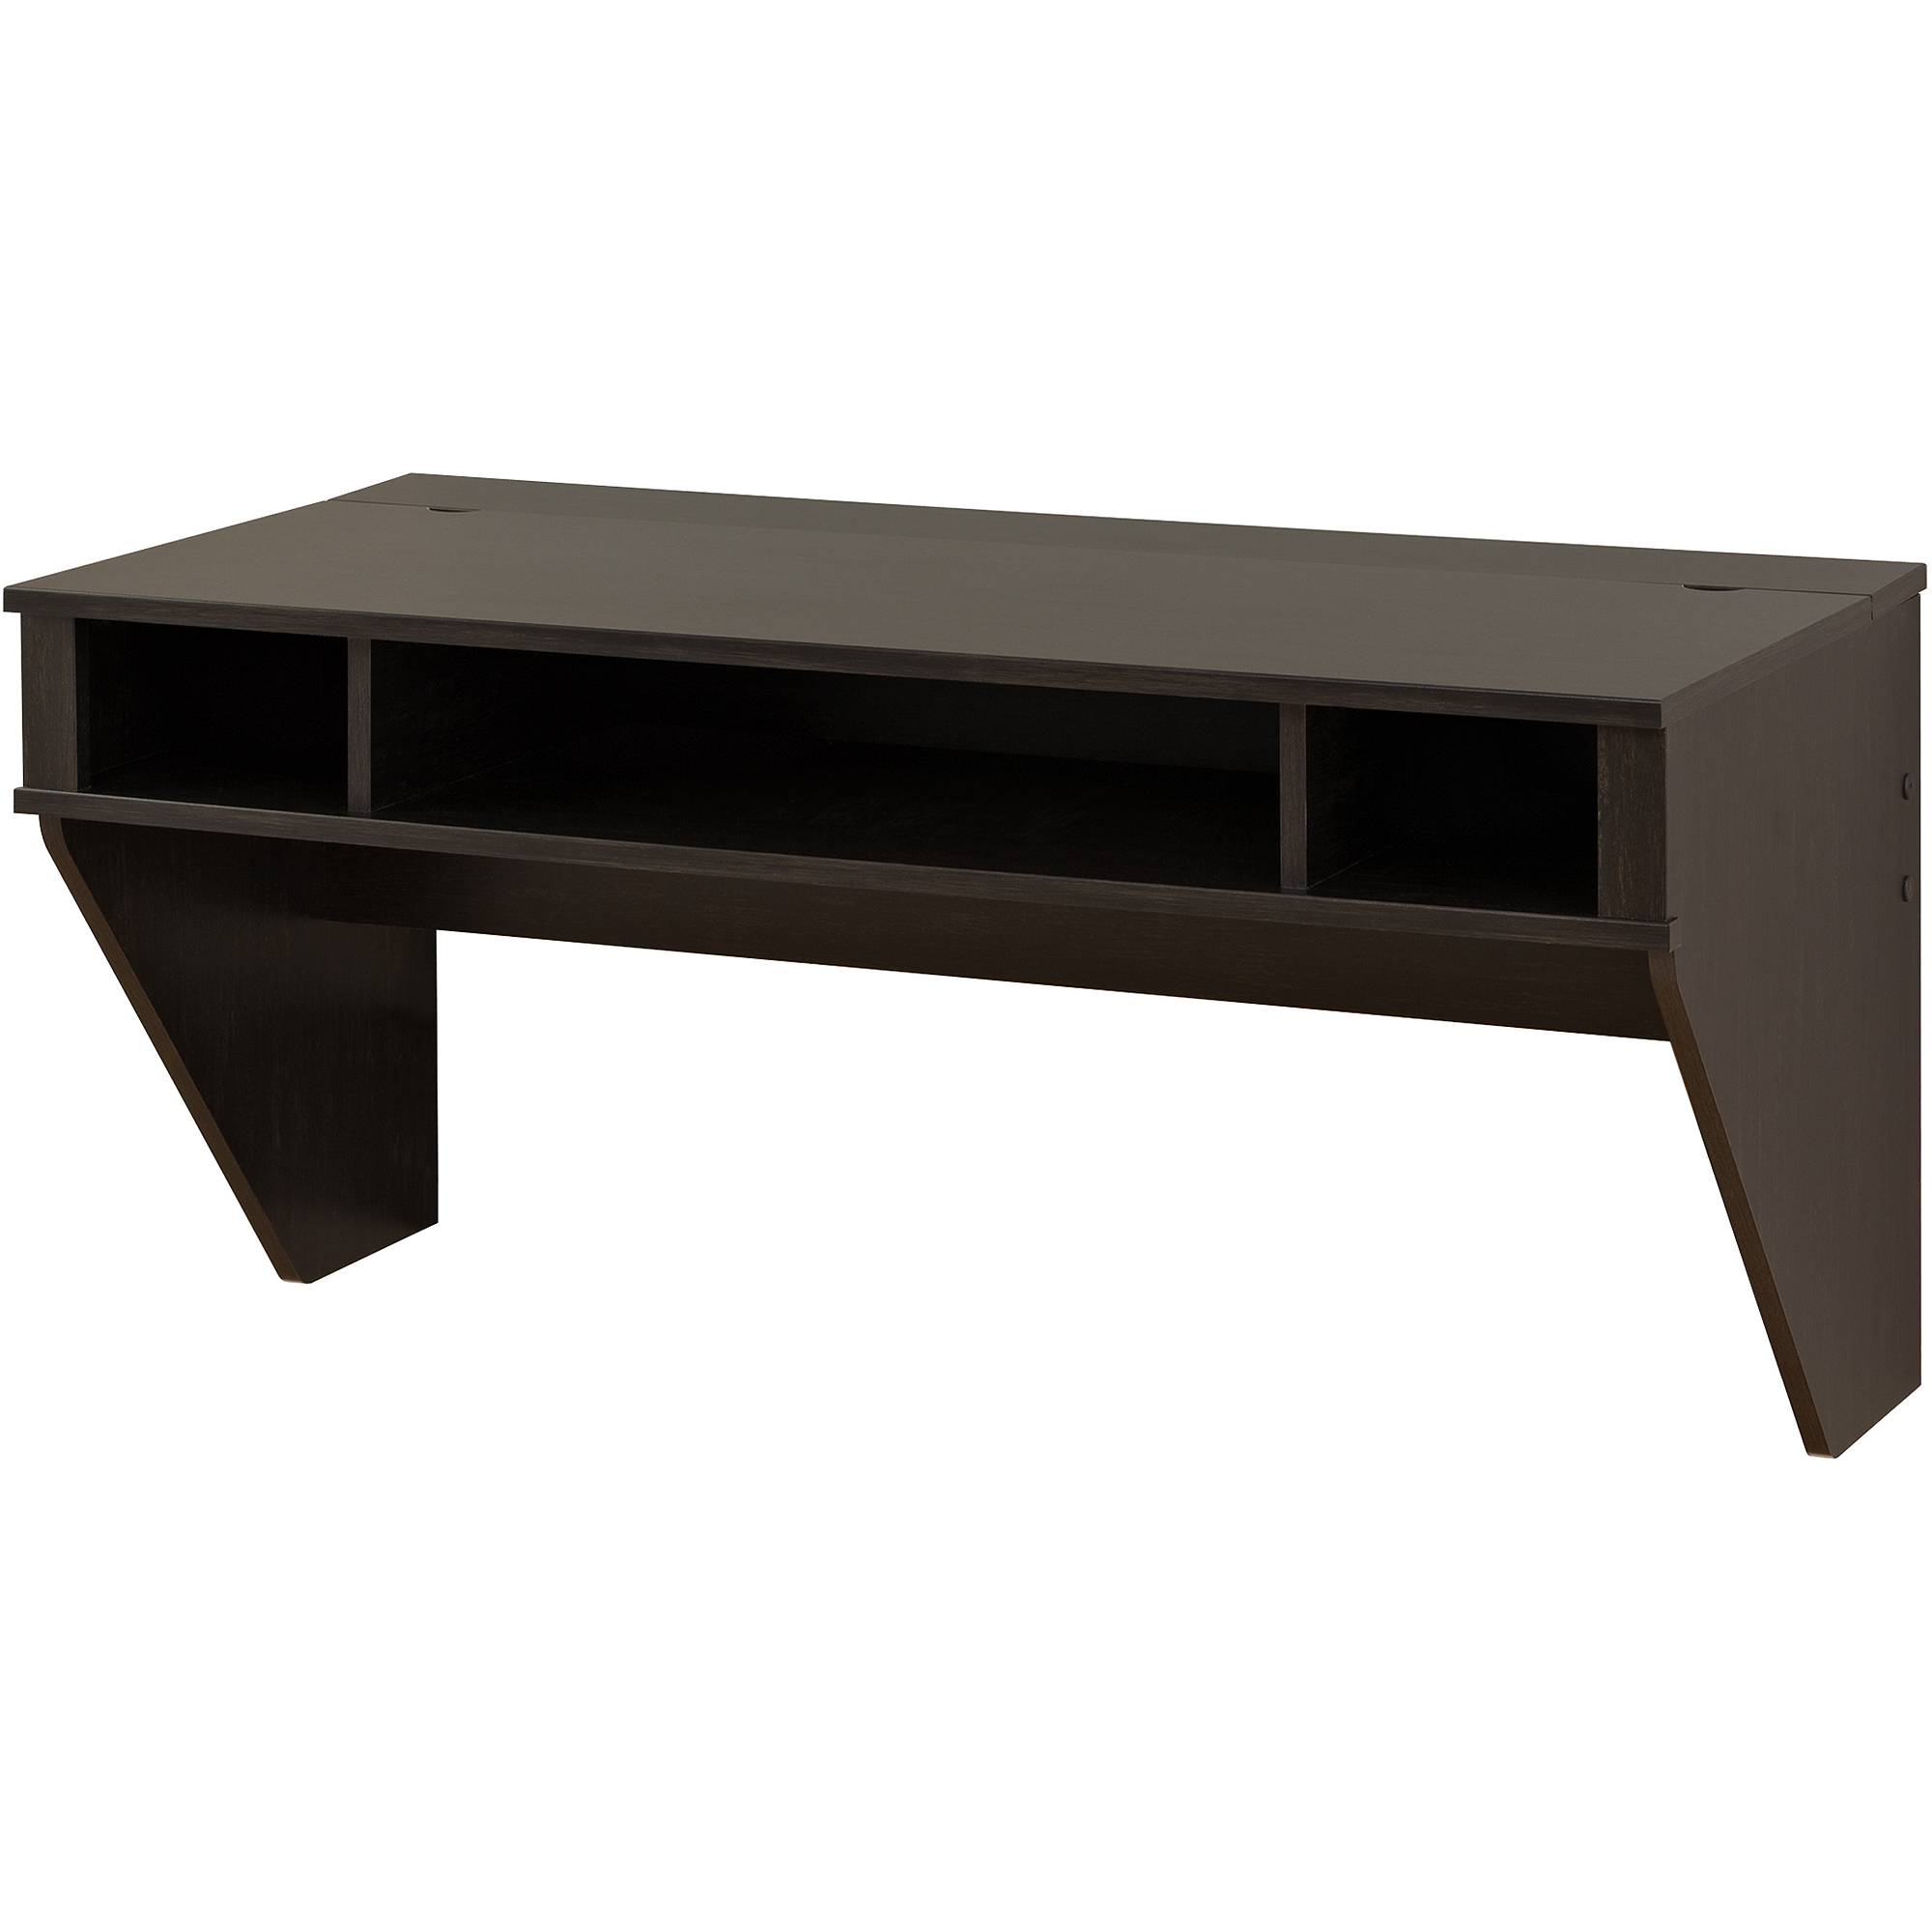 desk washed ebony hehw beyond floating stores in prp stock availability prepac designer